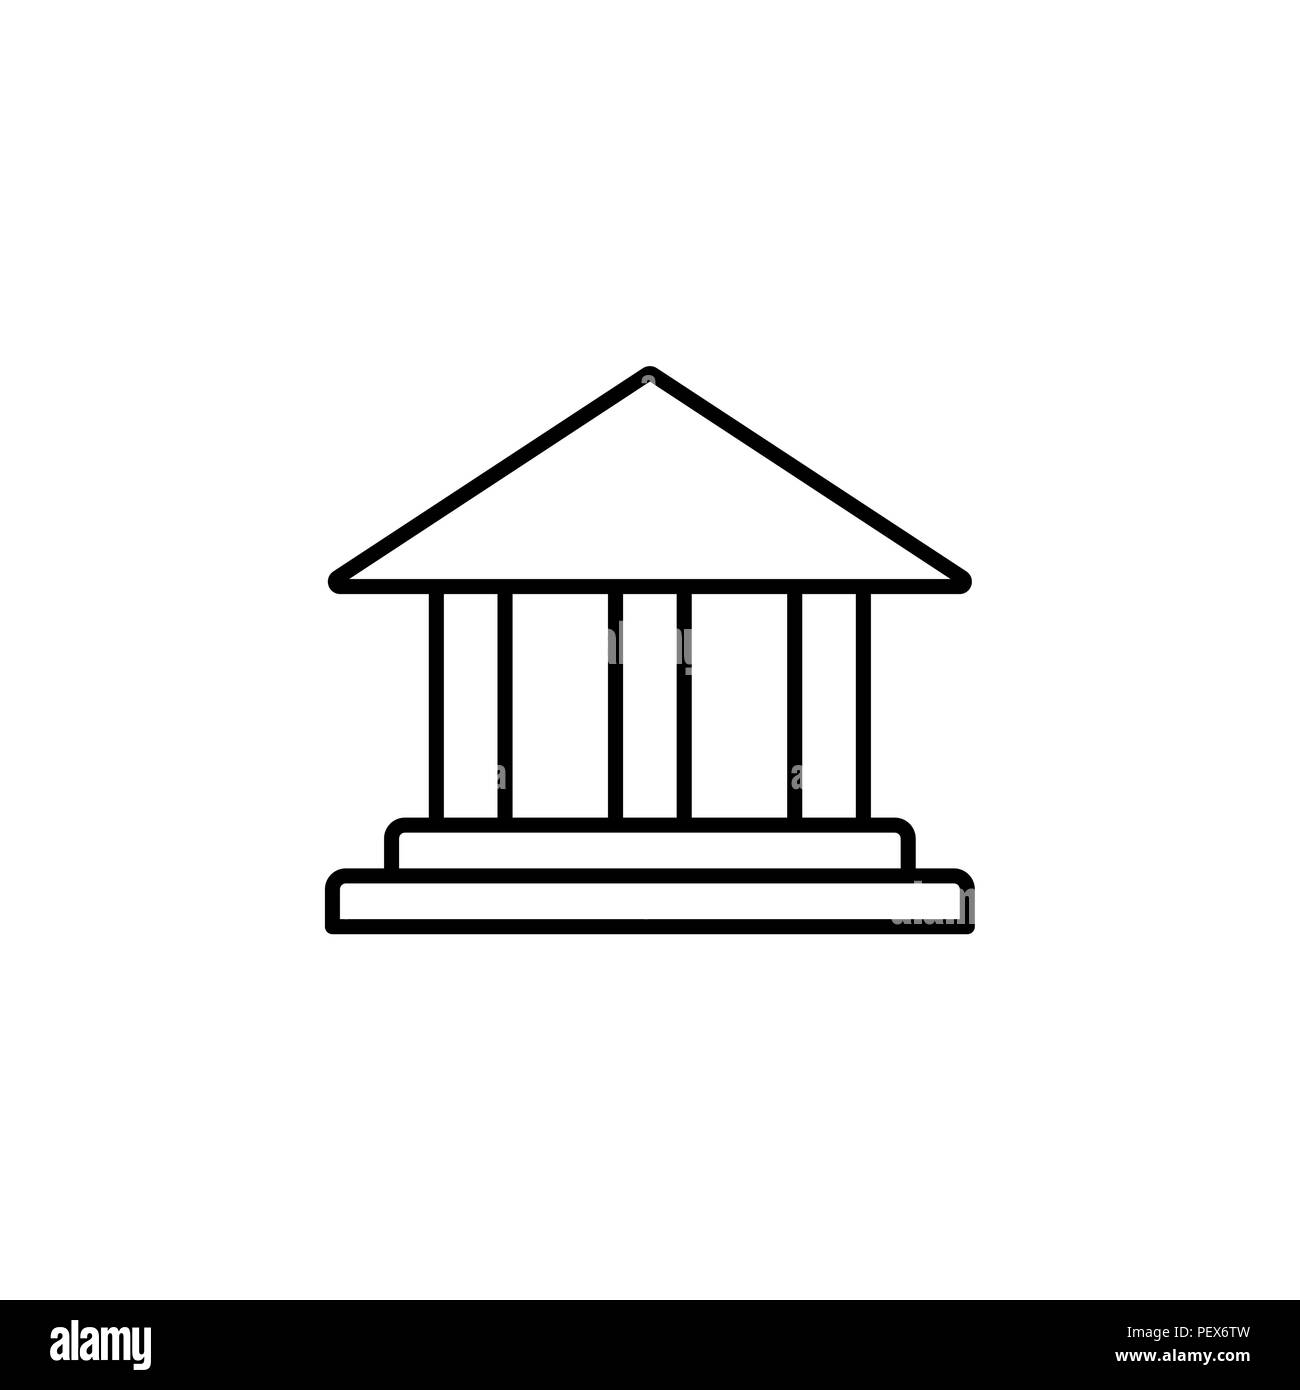 Museum building icon. vector illustration black on white background - Stock Image